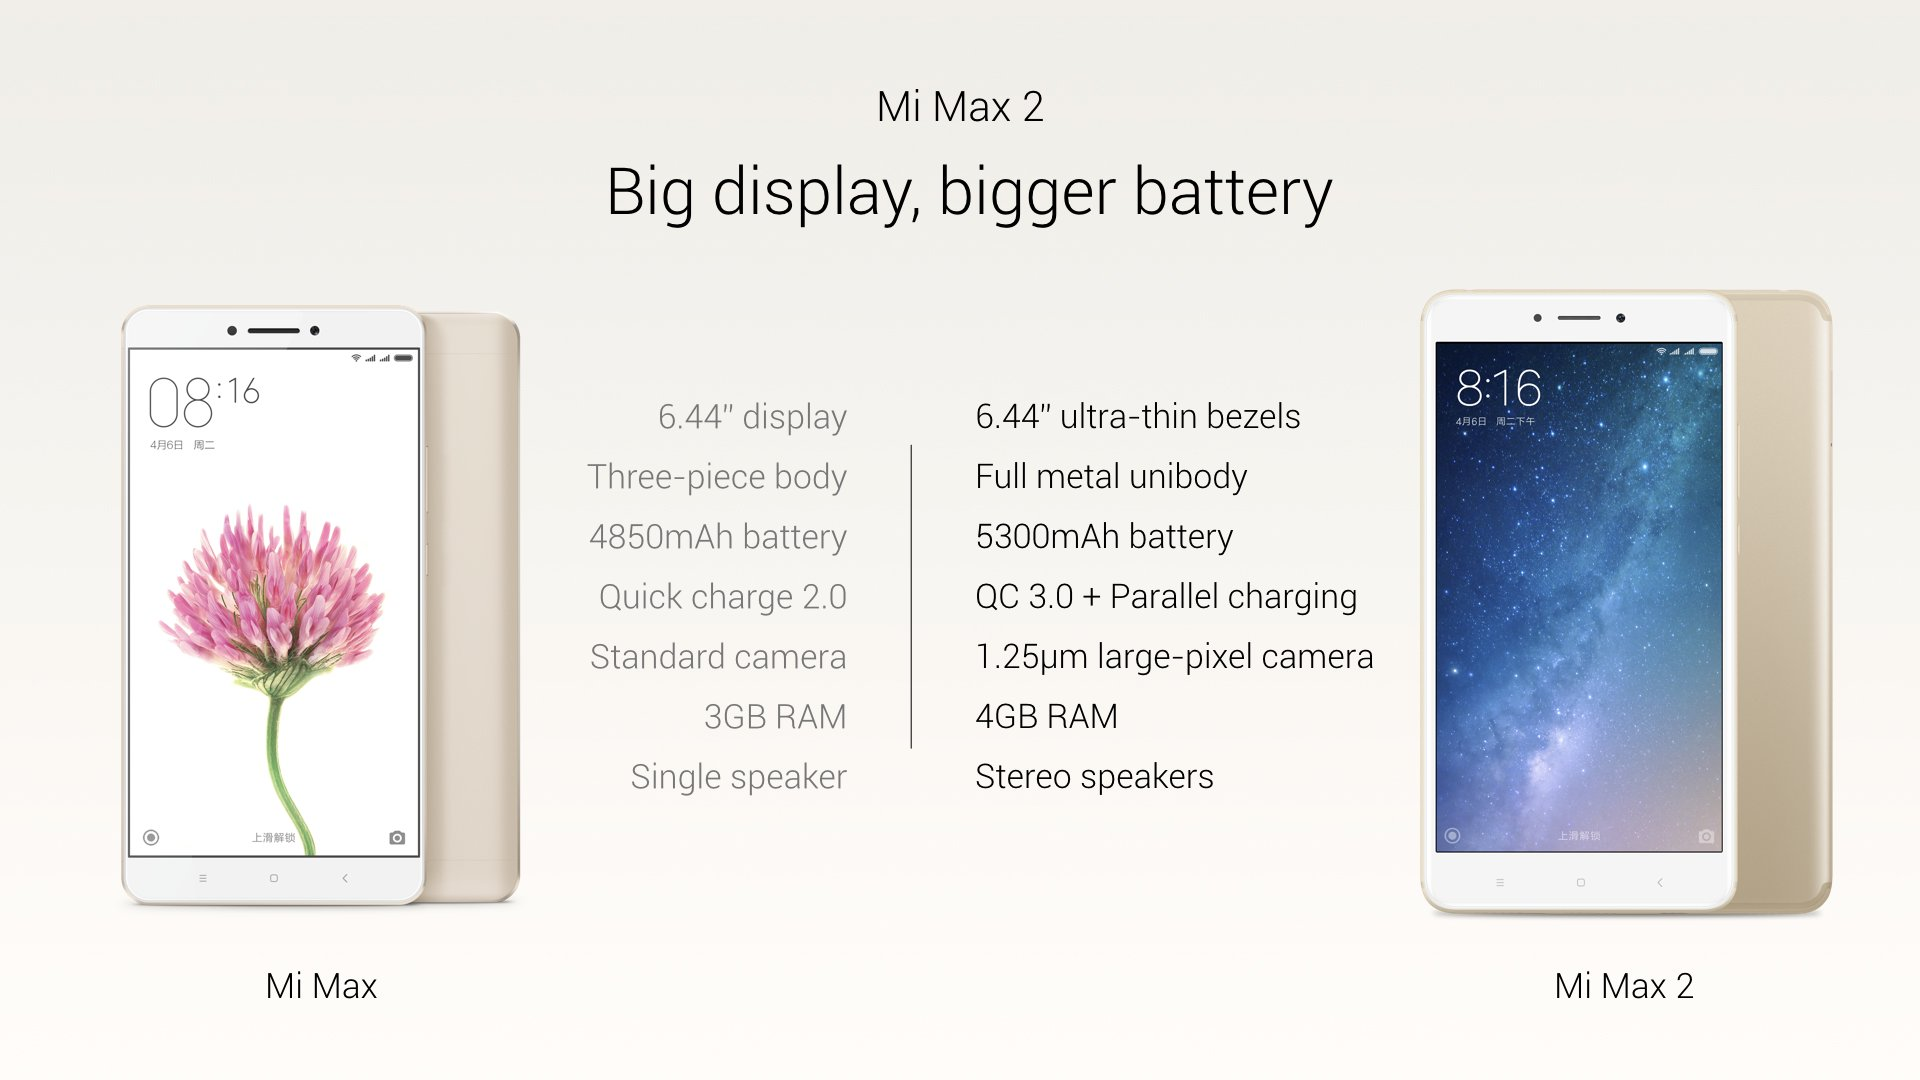 xiaomi mi max 2 launched in china with bigger 5300mah battery and sony imx386 sensor